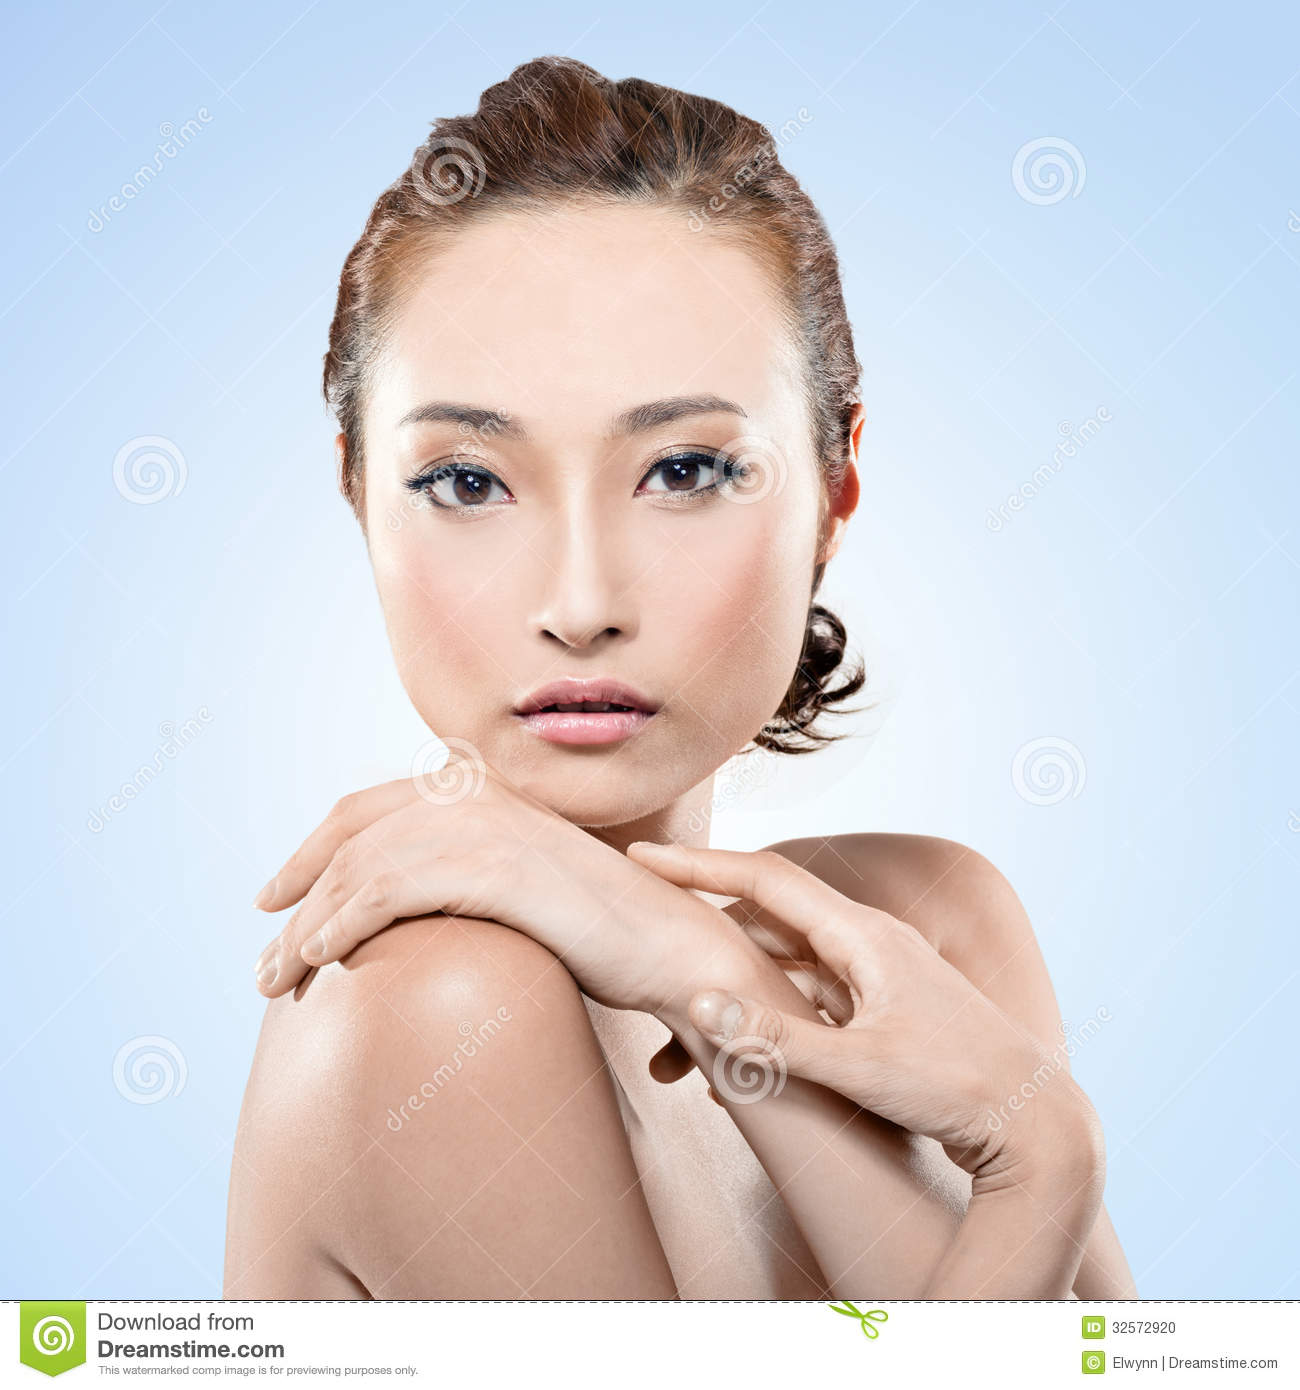 Asian Beauty Stock Photo Image 32572920